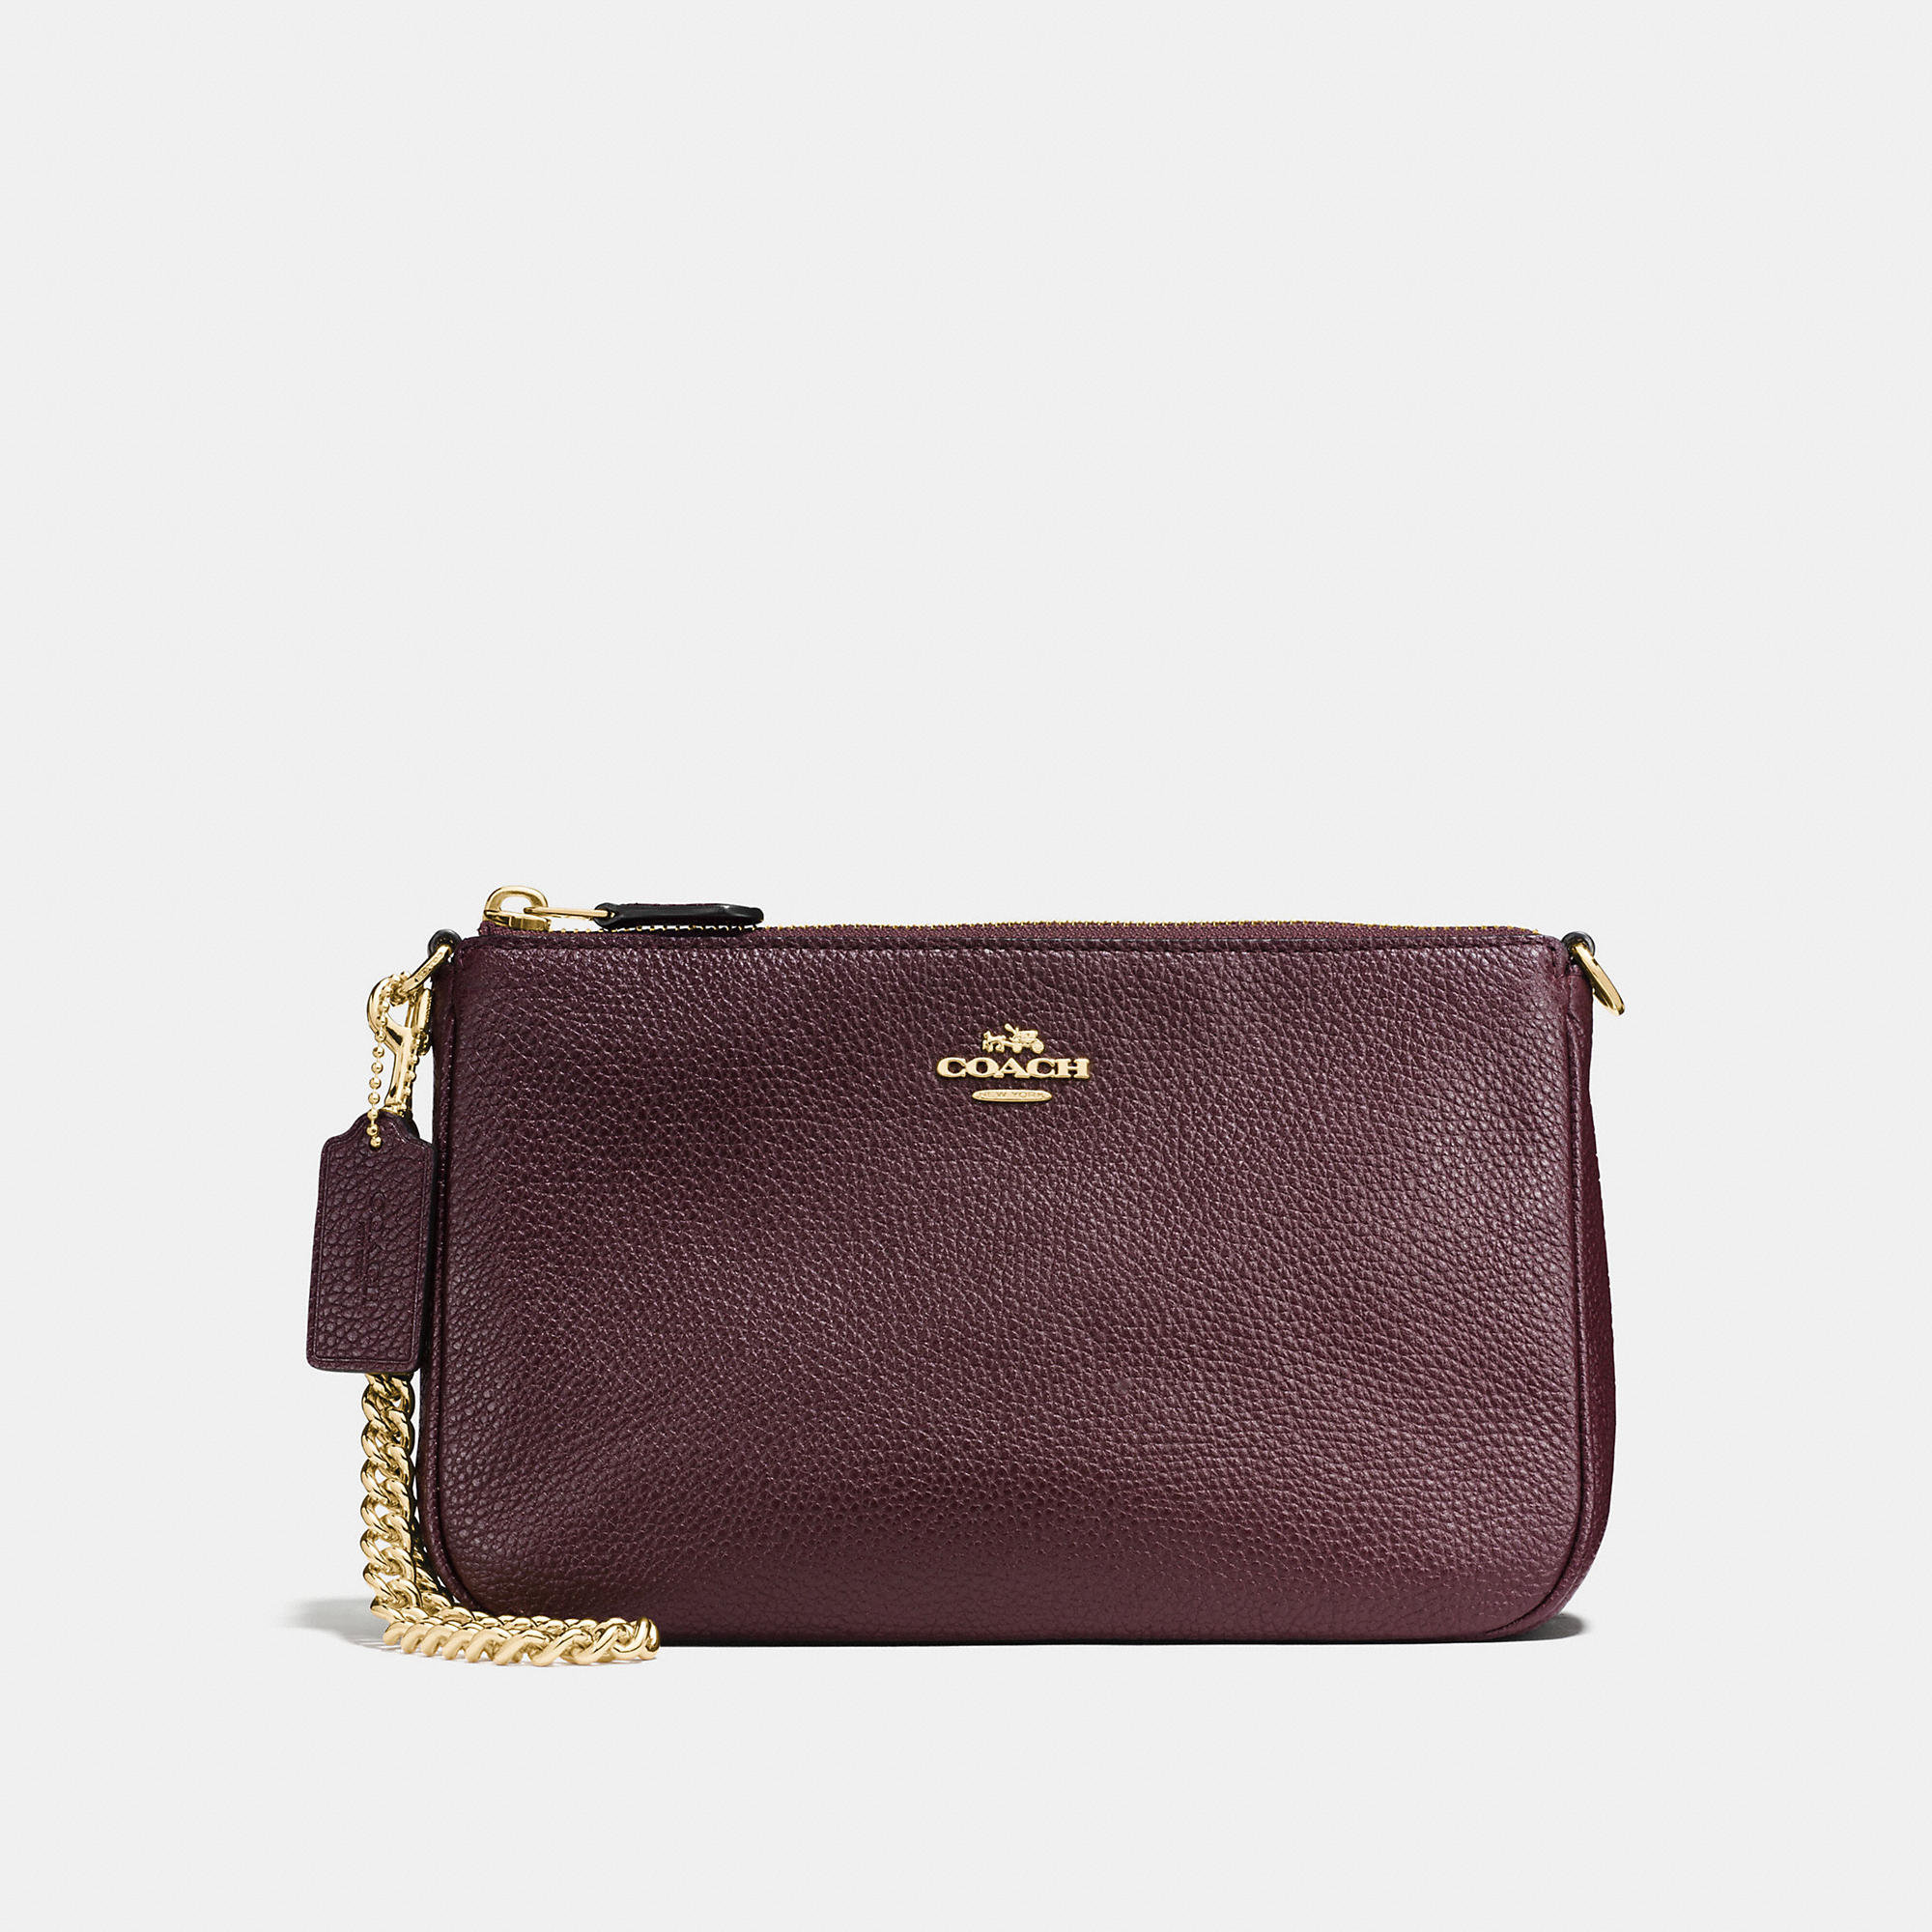 Coach Nolita Wristlet 22 In Polished Pebble Leather